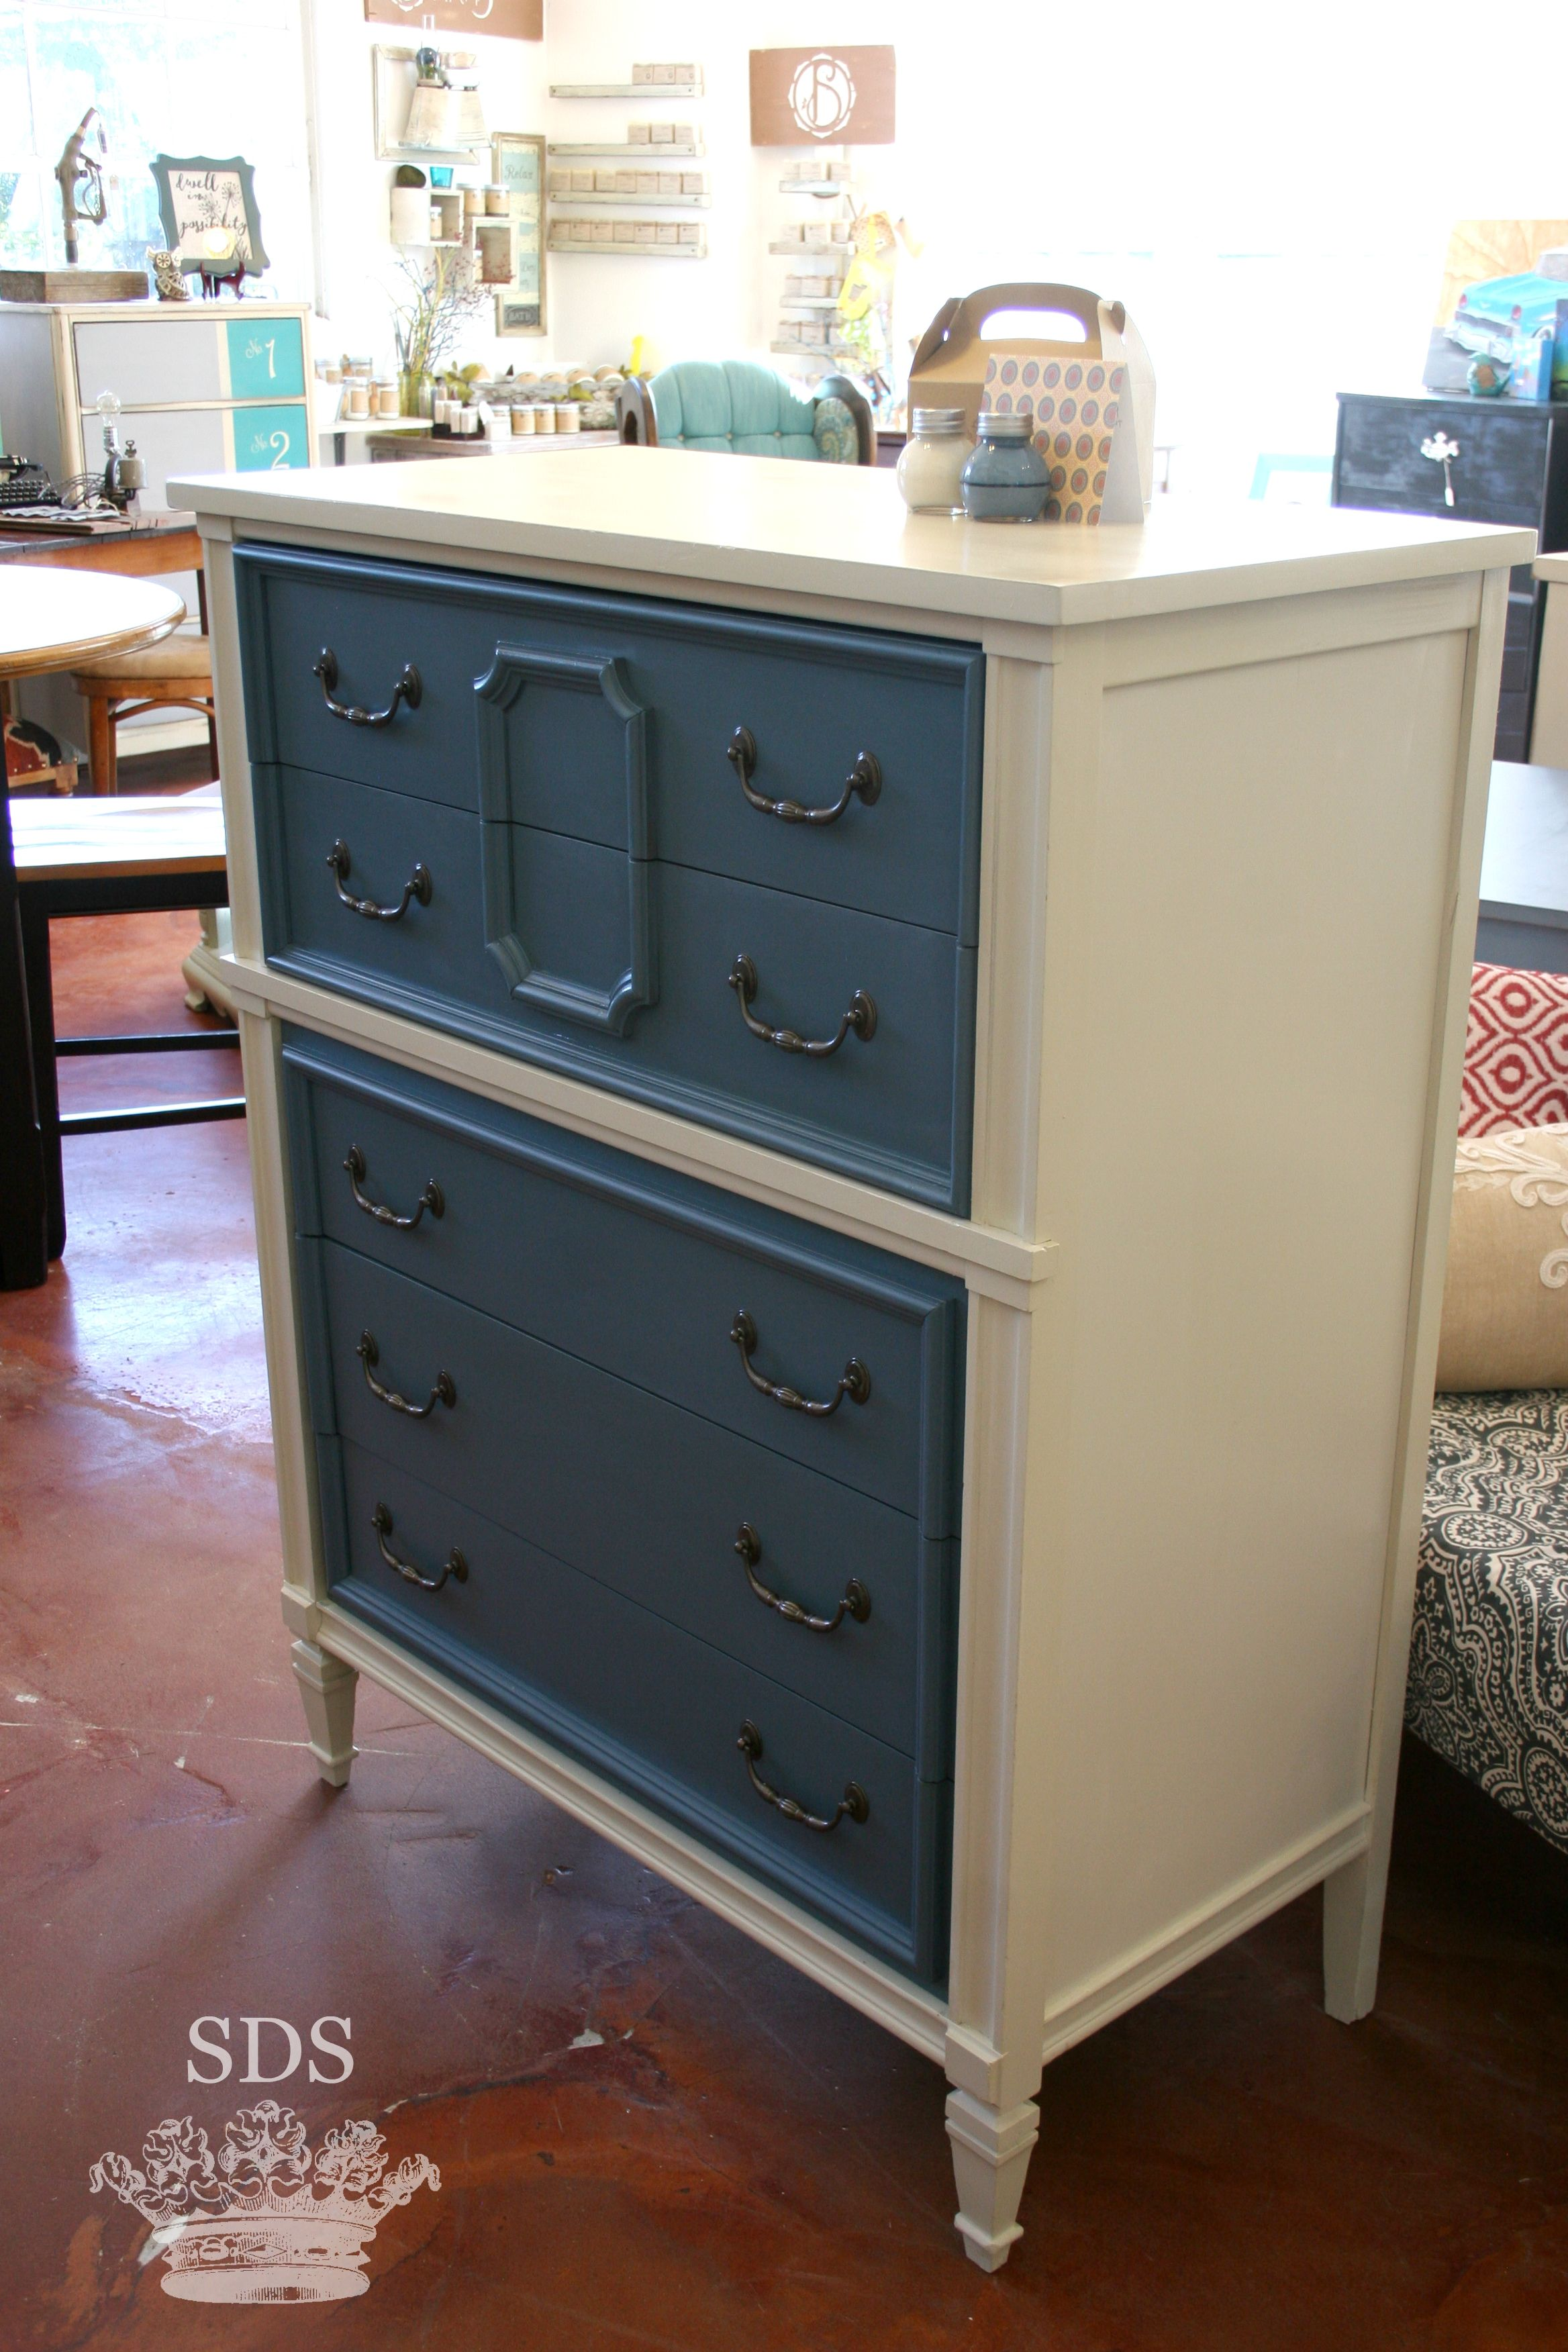 Cream And Blue Dresser. Painted Furniture By Sincerely Danielle Shunk. Boho,  Shabby Chic